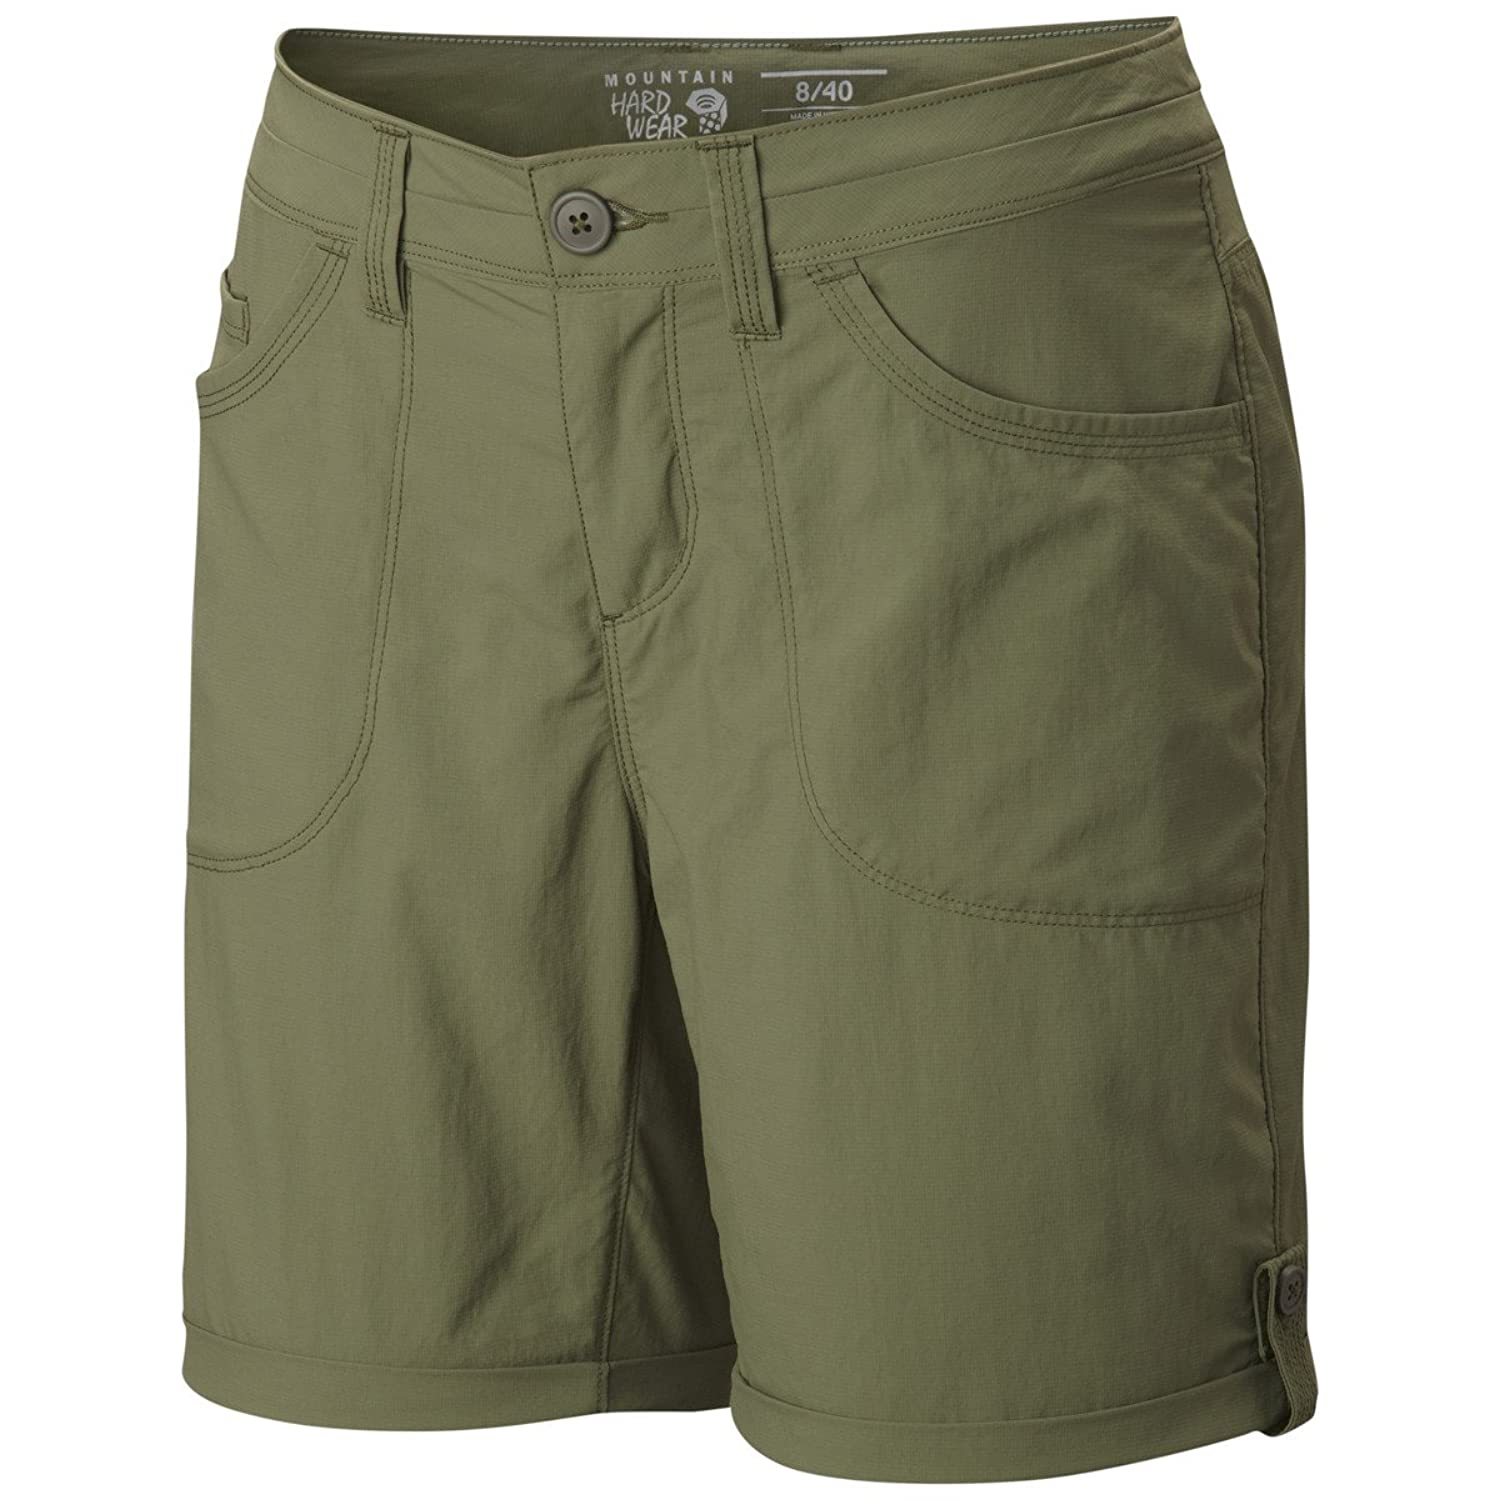 Mountain Hardwear Women's Mirada Shorts 4, Mosstone